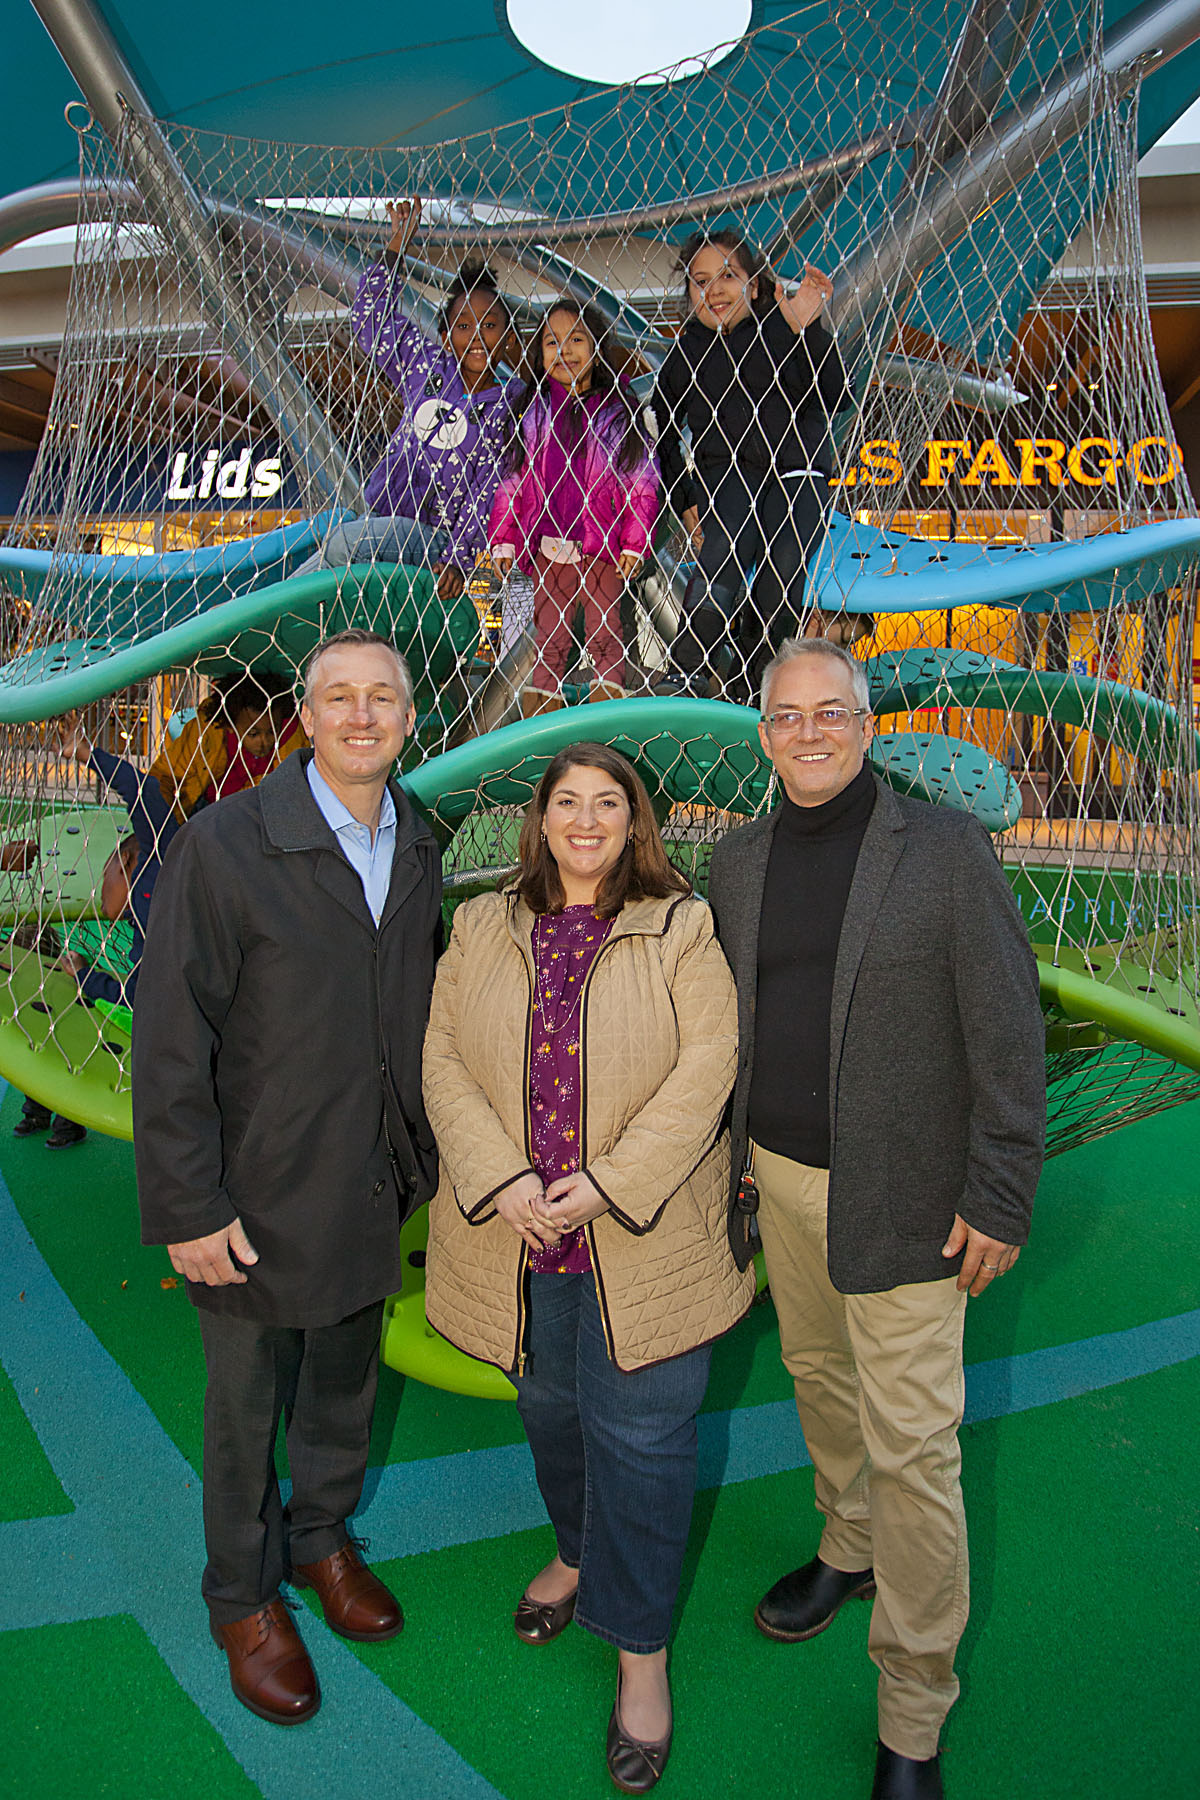 Picture here: children at play during the grand opening, Carl Calabro and Liz Pollack from Cross County Shopping Center, and Heurista's Ed Manner